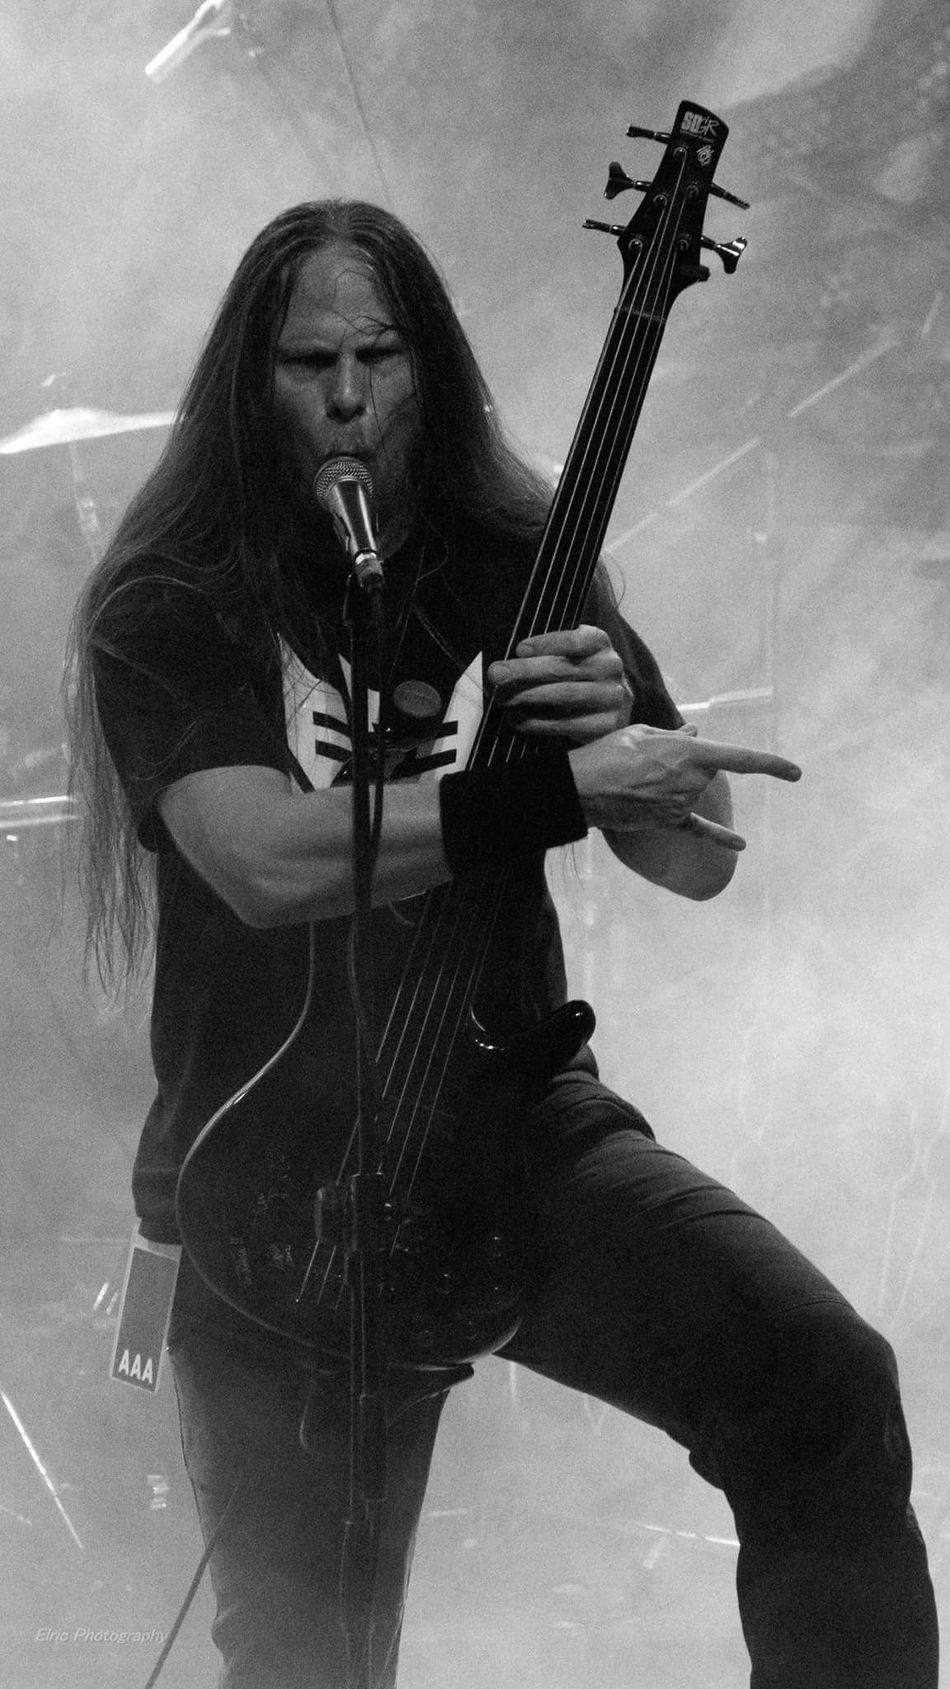 The Monolith Deathcult Live Live Music Concert Sony A6000 18-105mm Athens Greece Enjoying Life My Point Of View Heavy Metal Death Metal Musicians Black And White Photography Black And White Portrait Devil Horns Unholy Taking Photos Capture The Moment Catch The Moment